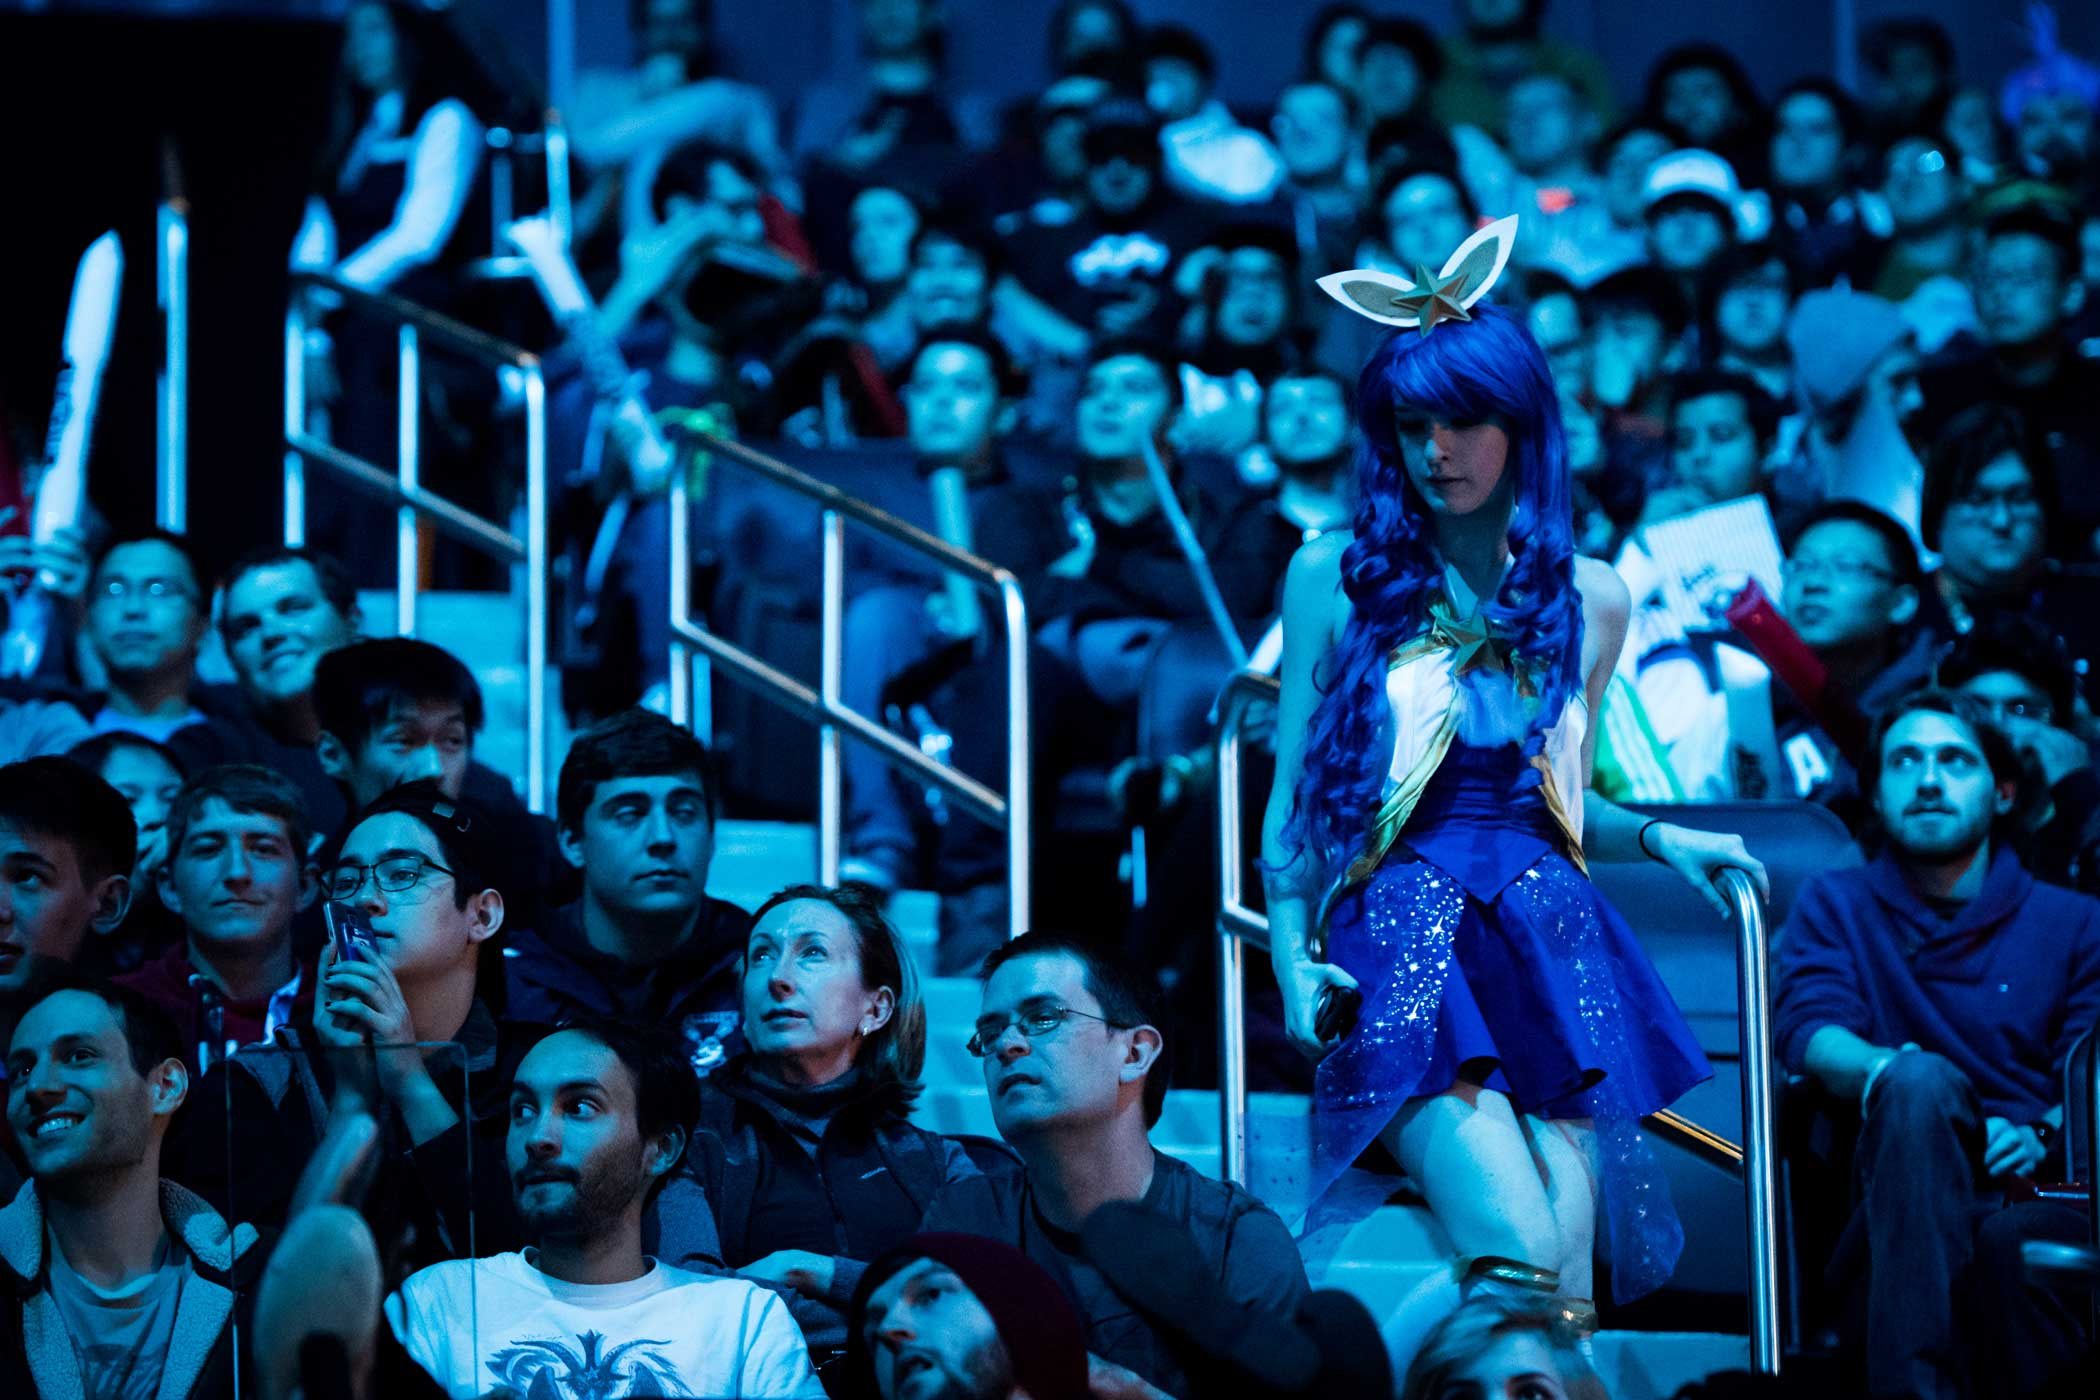 A League of Legends fan wearing a cosplay outfit heads to her seat.